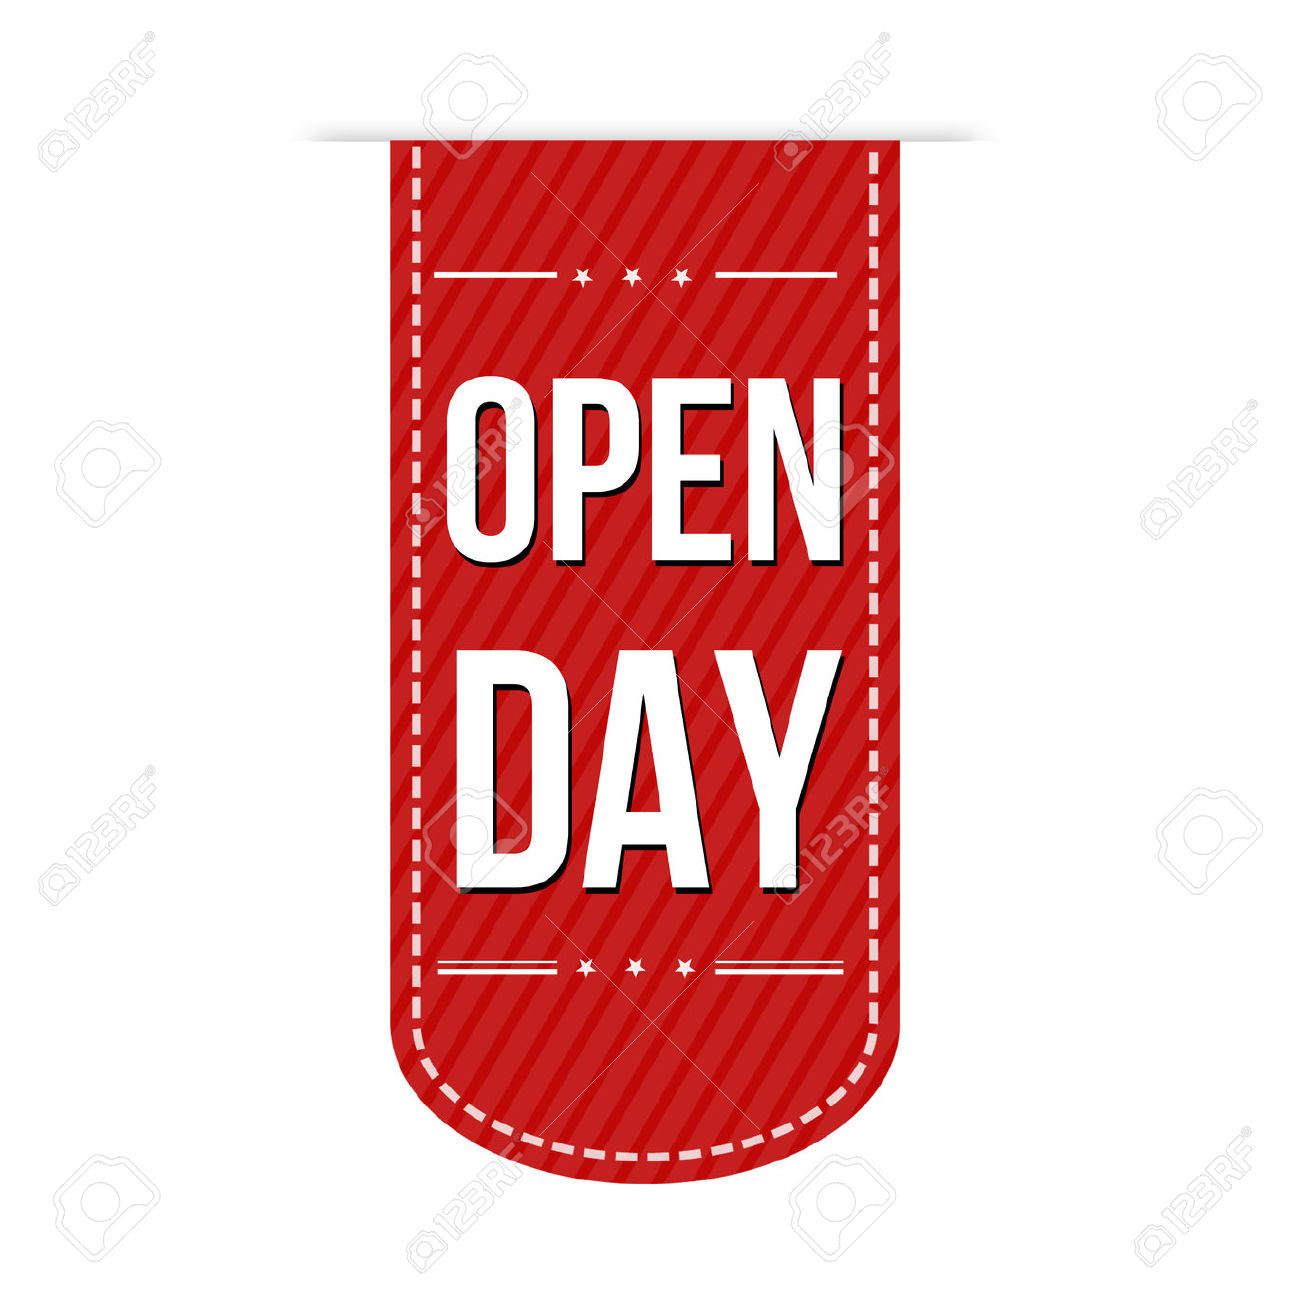 Open Day Banner Design Over A White Background, Vector.